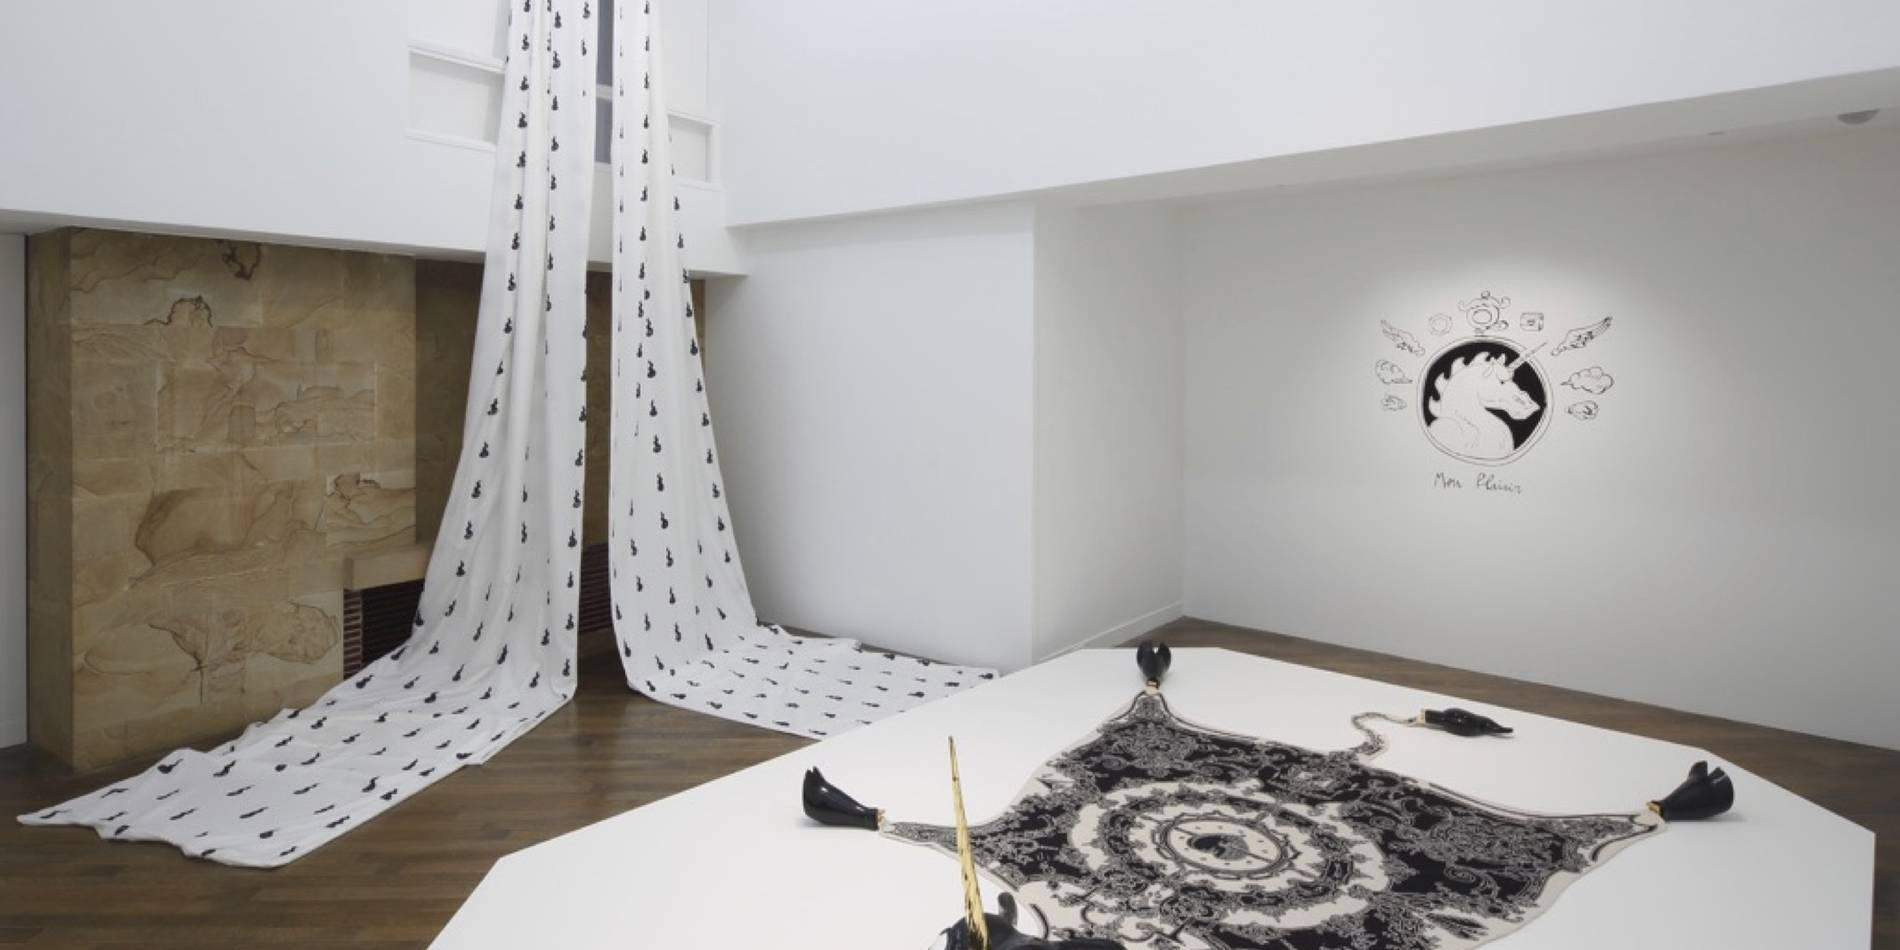 ·: Nicolas Buffe :· - Nicolas Buffe, The Dream of Polifilo, Hara Museum 10 first room, Peau de Licorne, Cité de la Tapisserie, Aubusson (photo by Keizo Kioku)